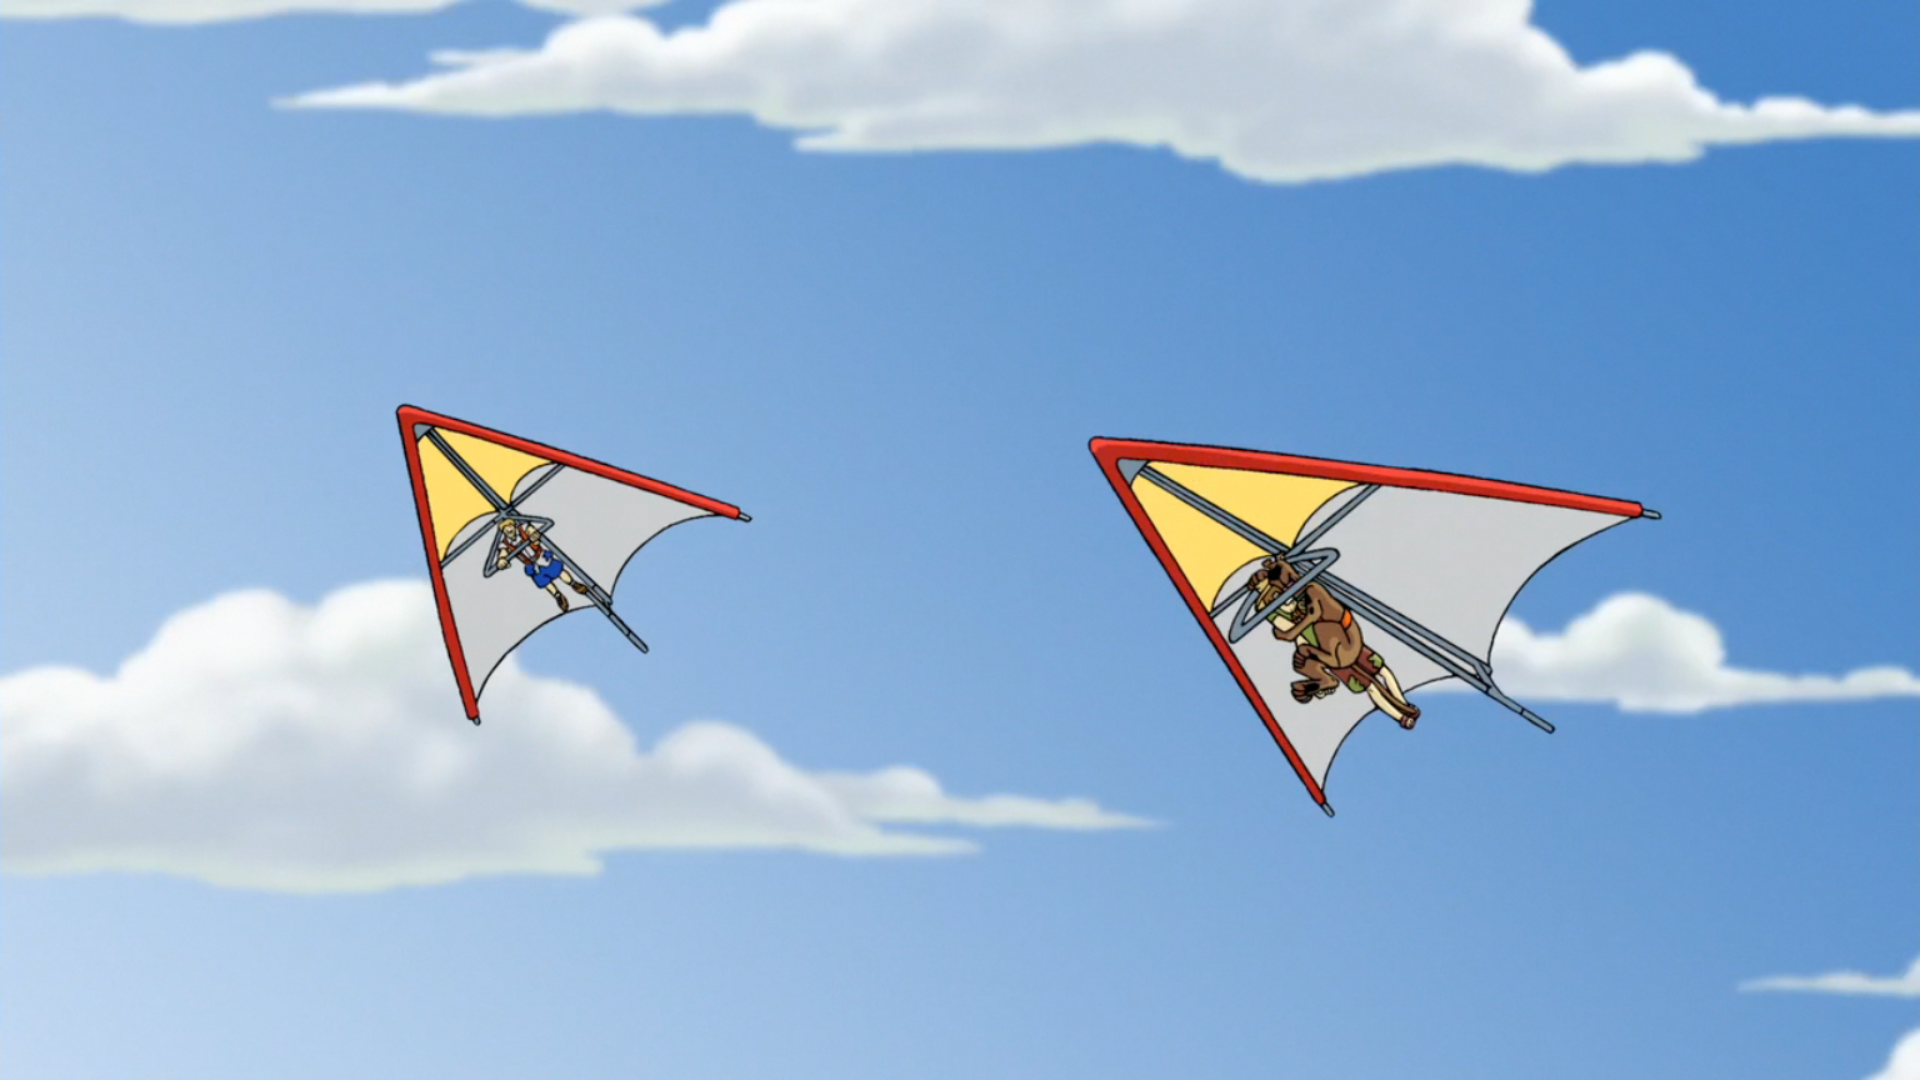 Images of Powered Hang Glider Plans - #rock-cafe